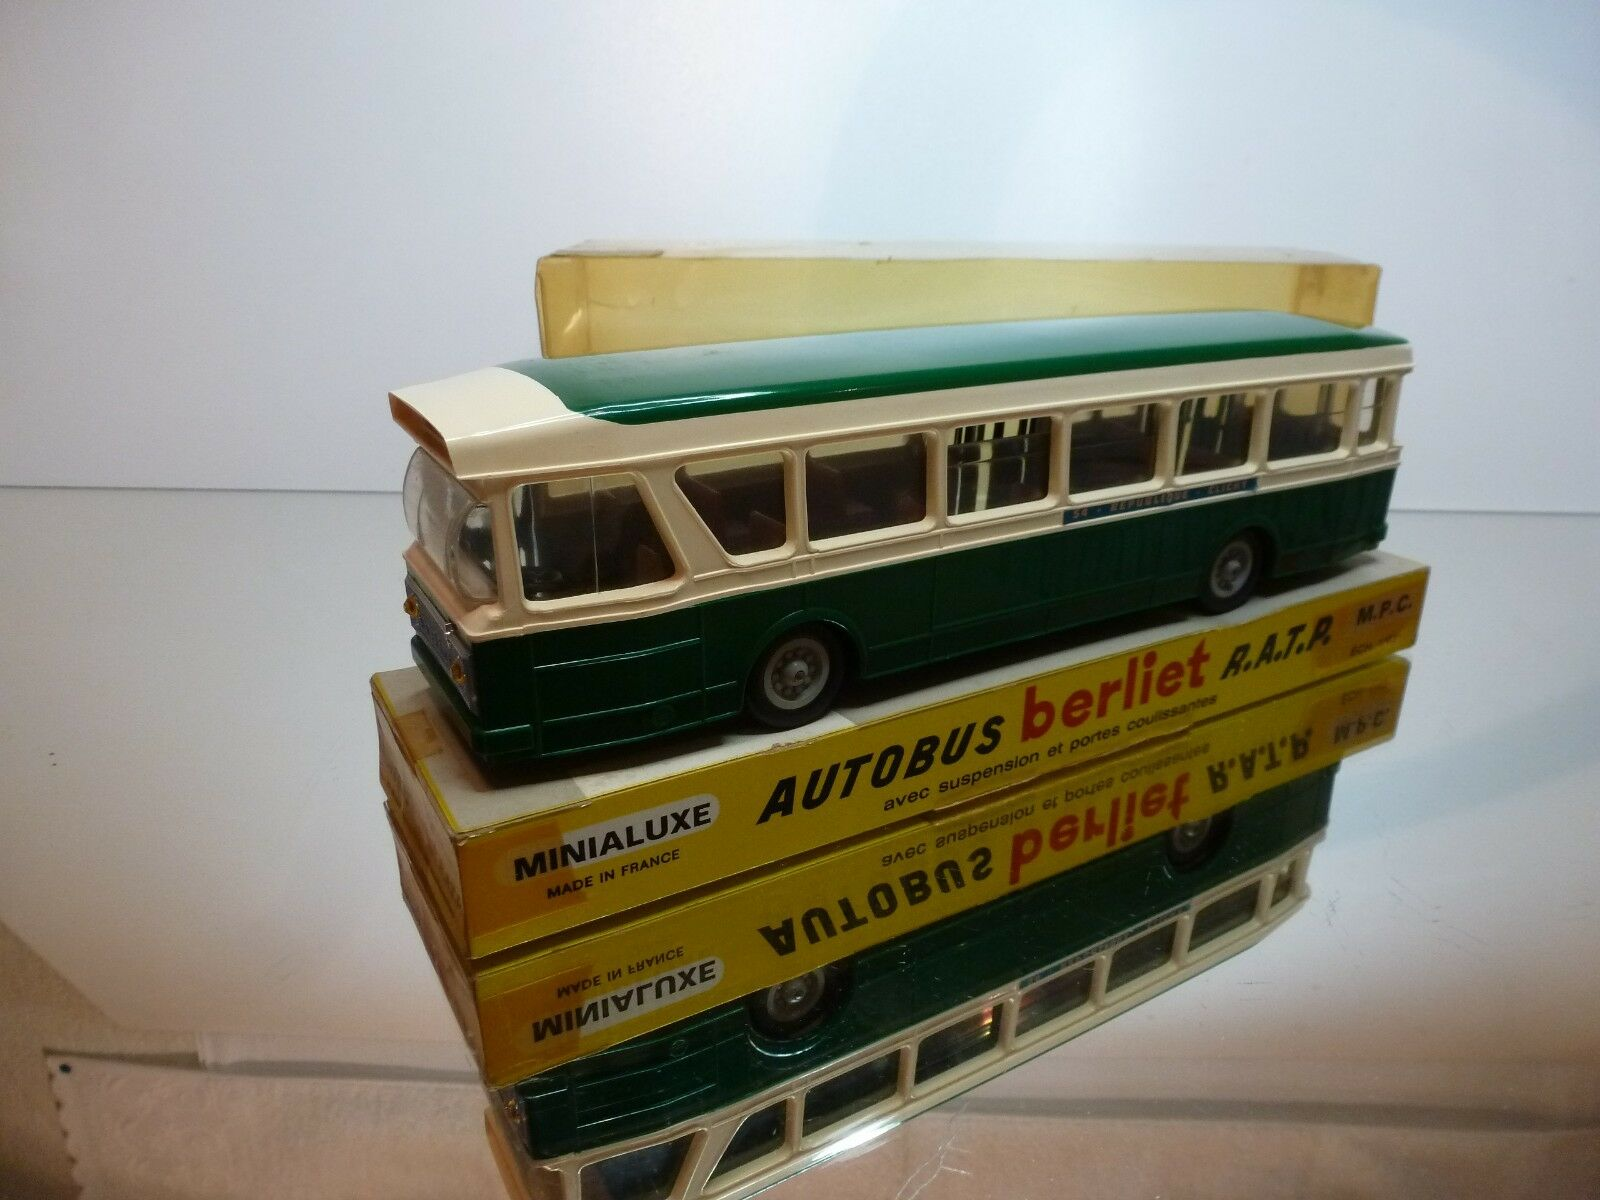 MINIALUXE AUTOBUS PARISIEN BERLIET R.A.T.P. - verde 1 43 RARE - VERY GOOD IN BOX